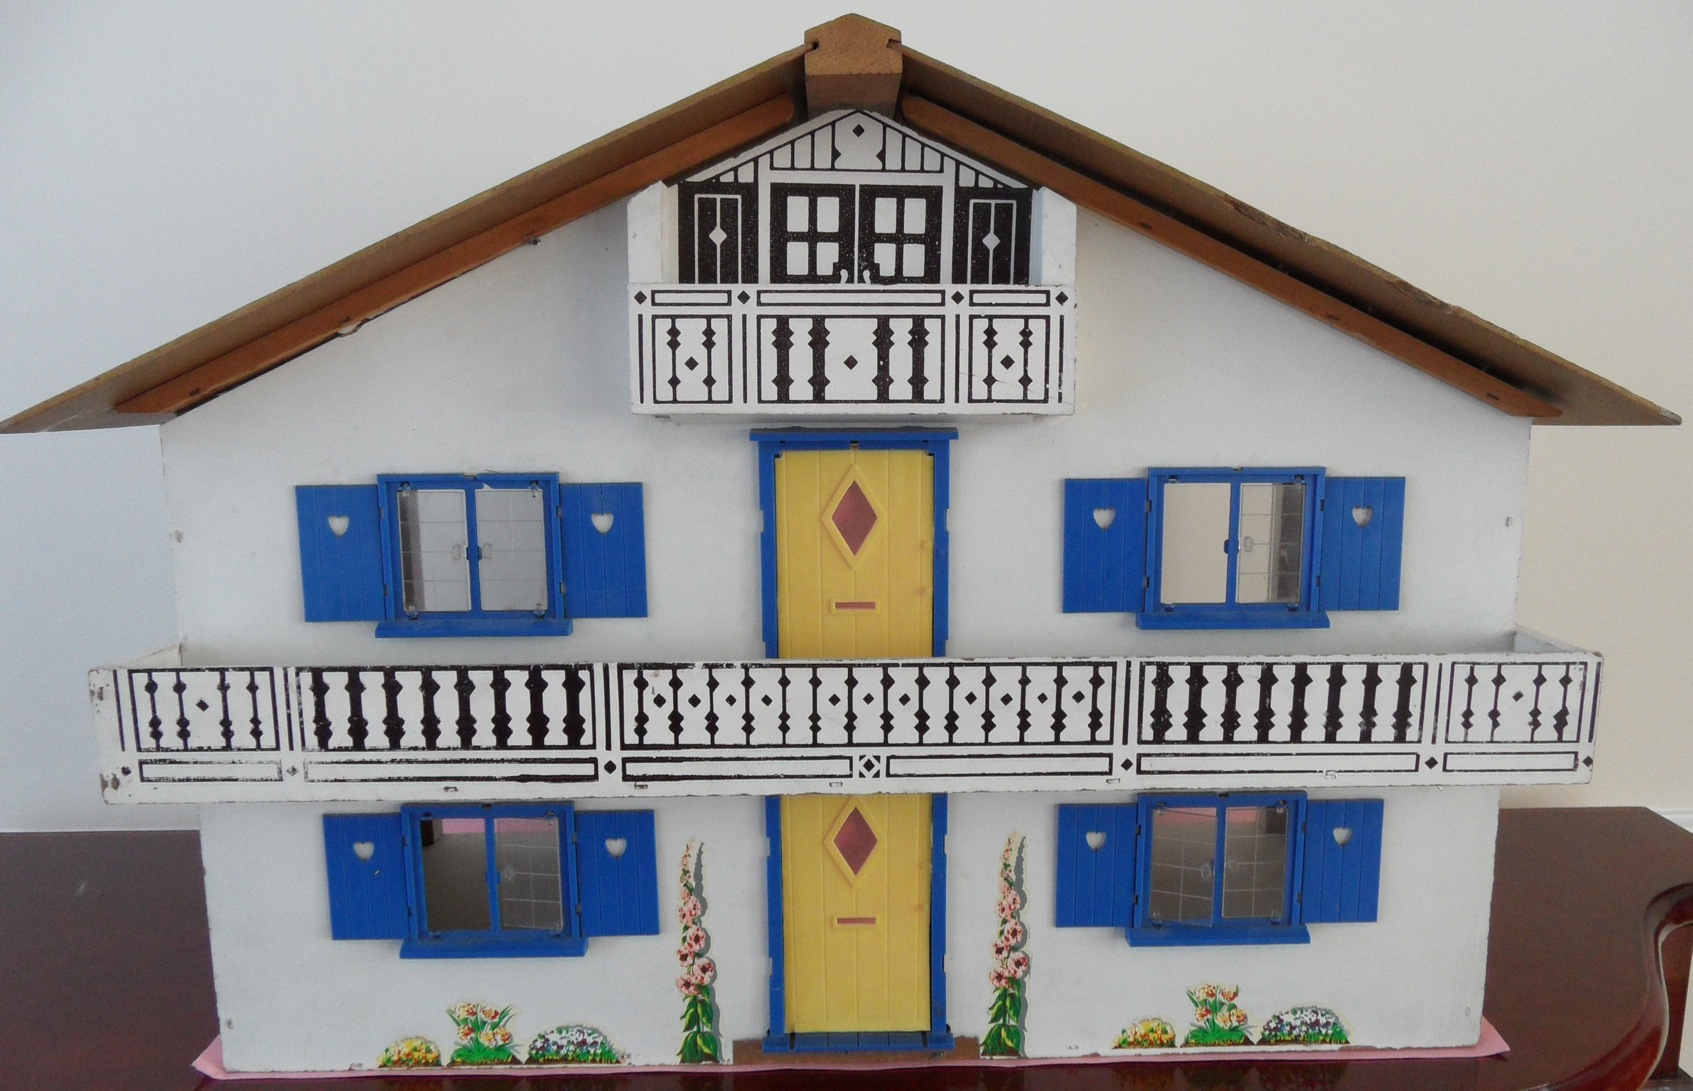 chalet dolls houses by rebecca green - dolls' houses past & present